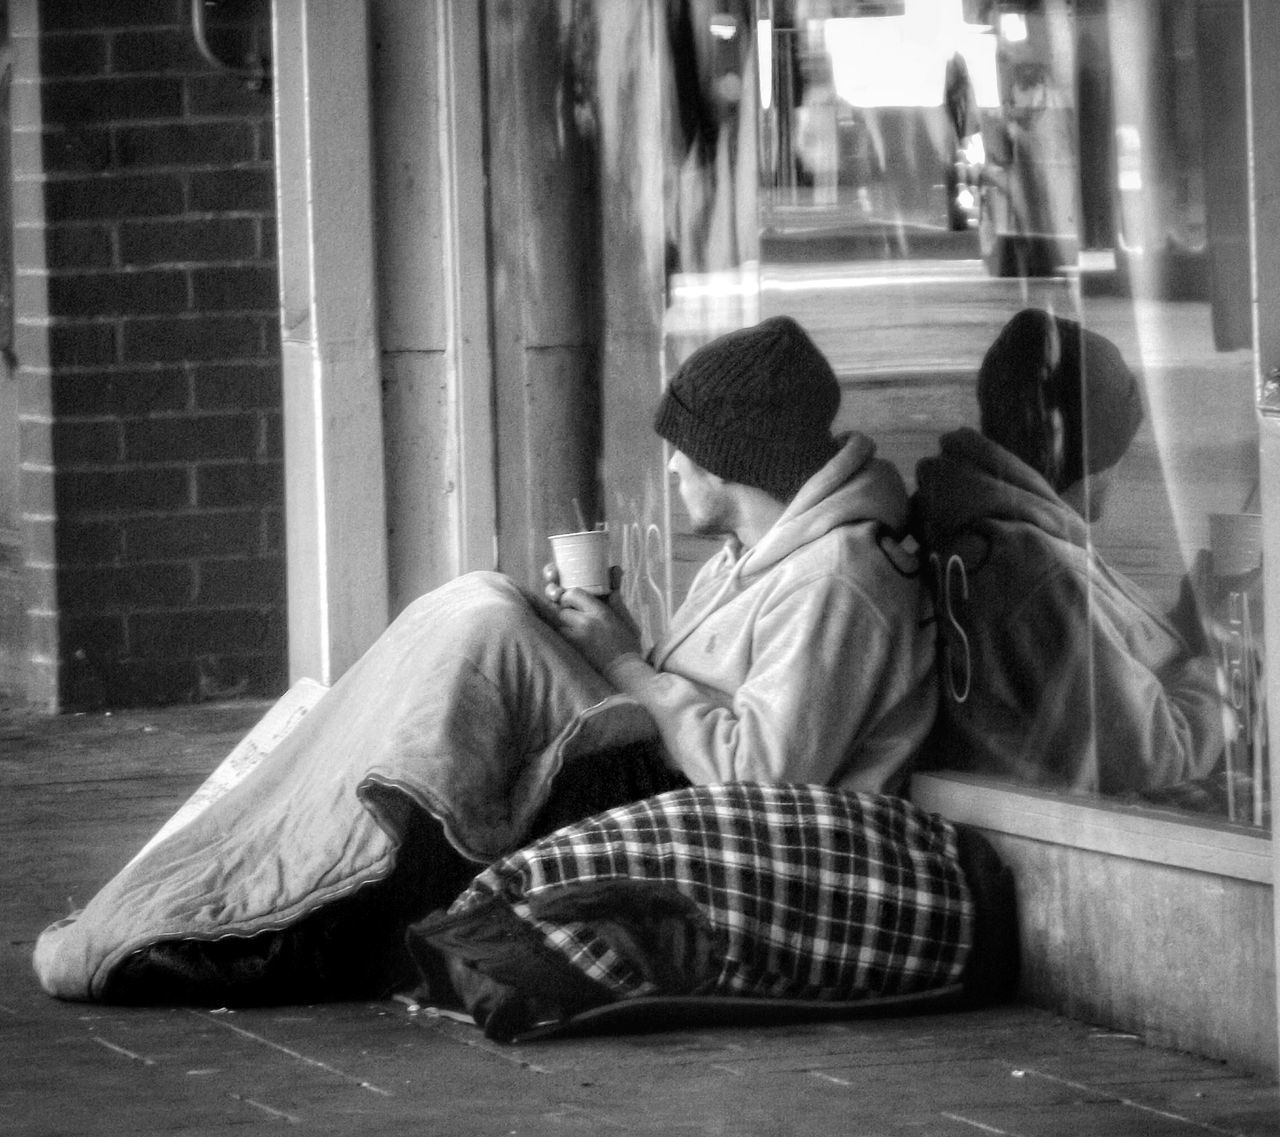 Another capture in my ongoing series people of Manchester and homeless of Manchester UK People Of Manchester Homeless Of Manchester Uk Taking Photos Fujifilm Street Photography Eyeem Streetphotography Taking Photos City Life Hdr_Collection EyeEm Documentary Photography Hdr Photography Homeless Monochrome Black And White Bnw_collection Creative Light And Shadow EyeEm Best Shots - Black + White Learn And Shoot: Balancing Elements